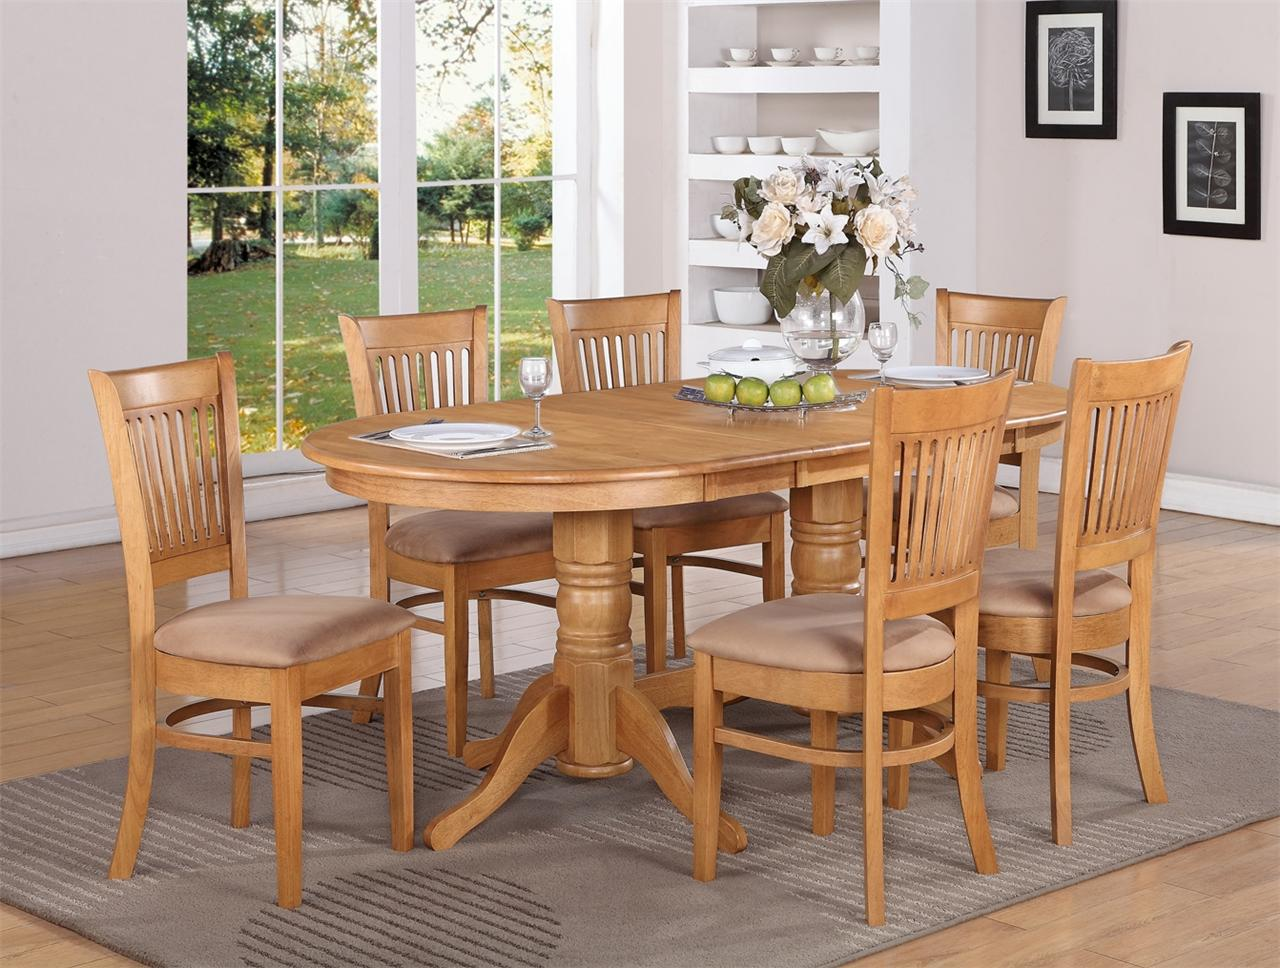 9 pc vancouver oval dinette kitchen dining set table w 8 upholster chairs in oak ebay - Wooden dining room chairs ...